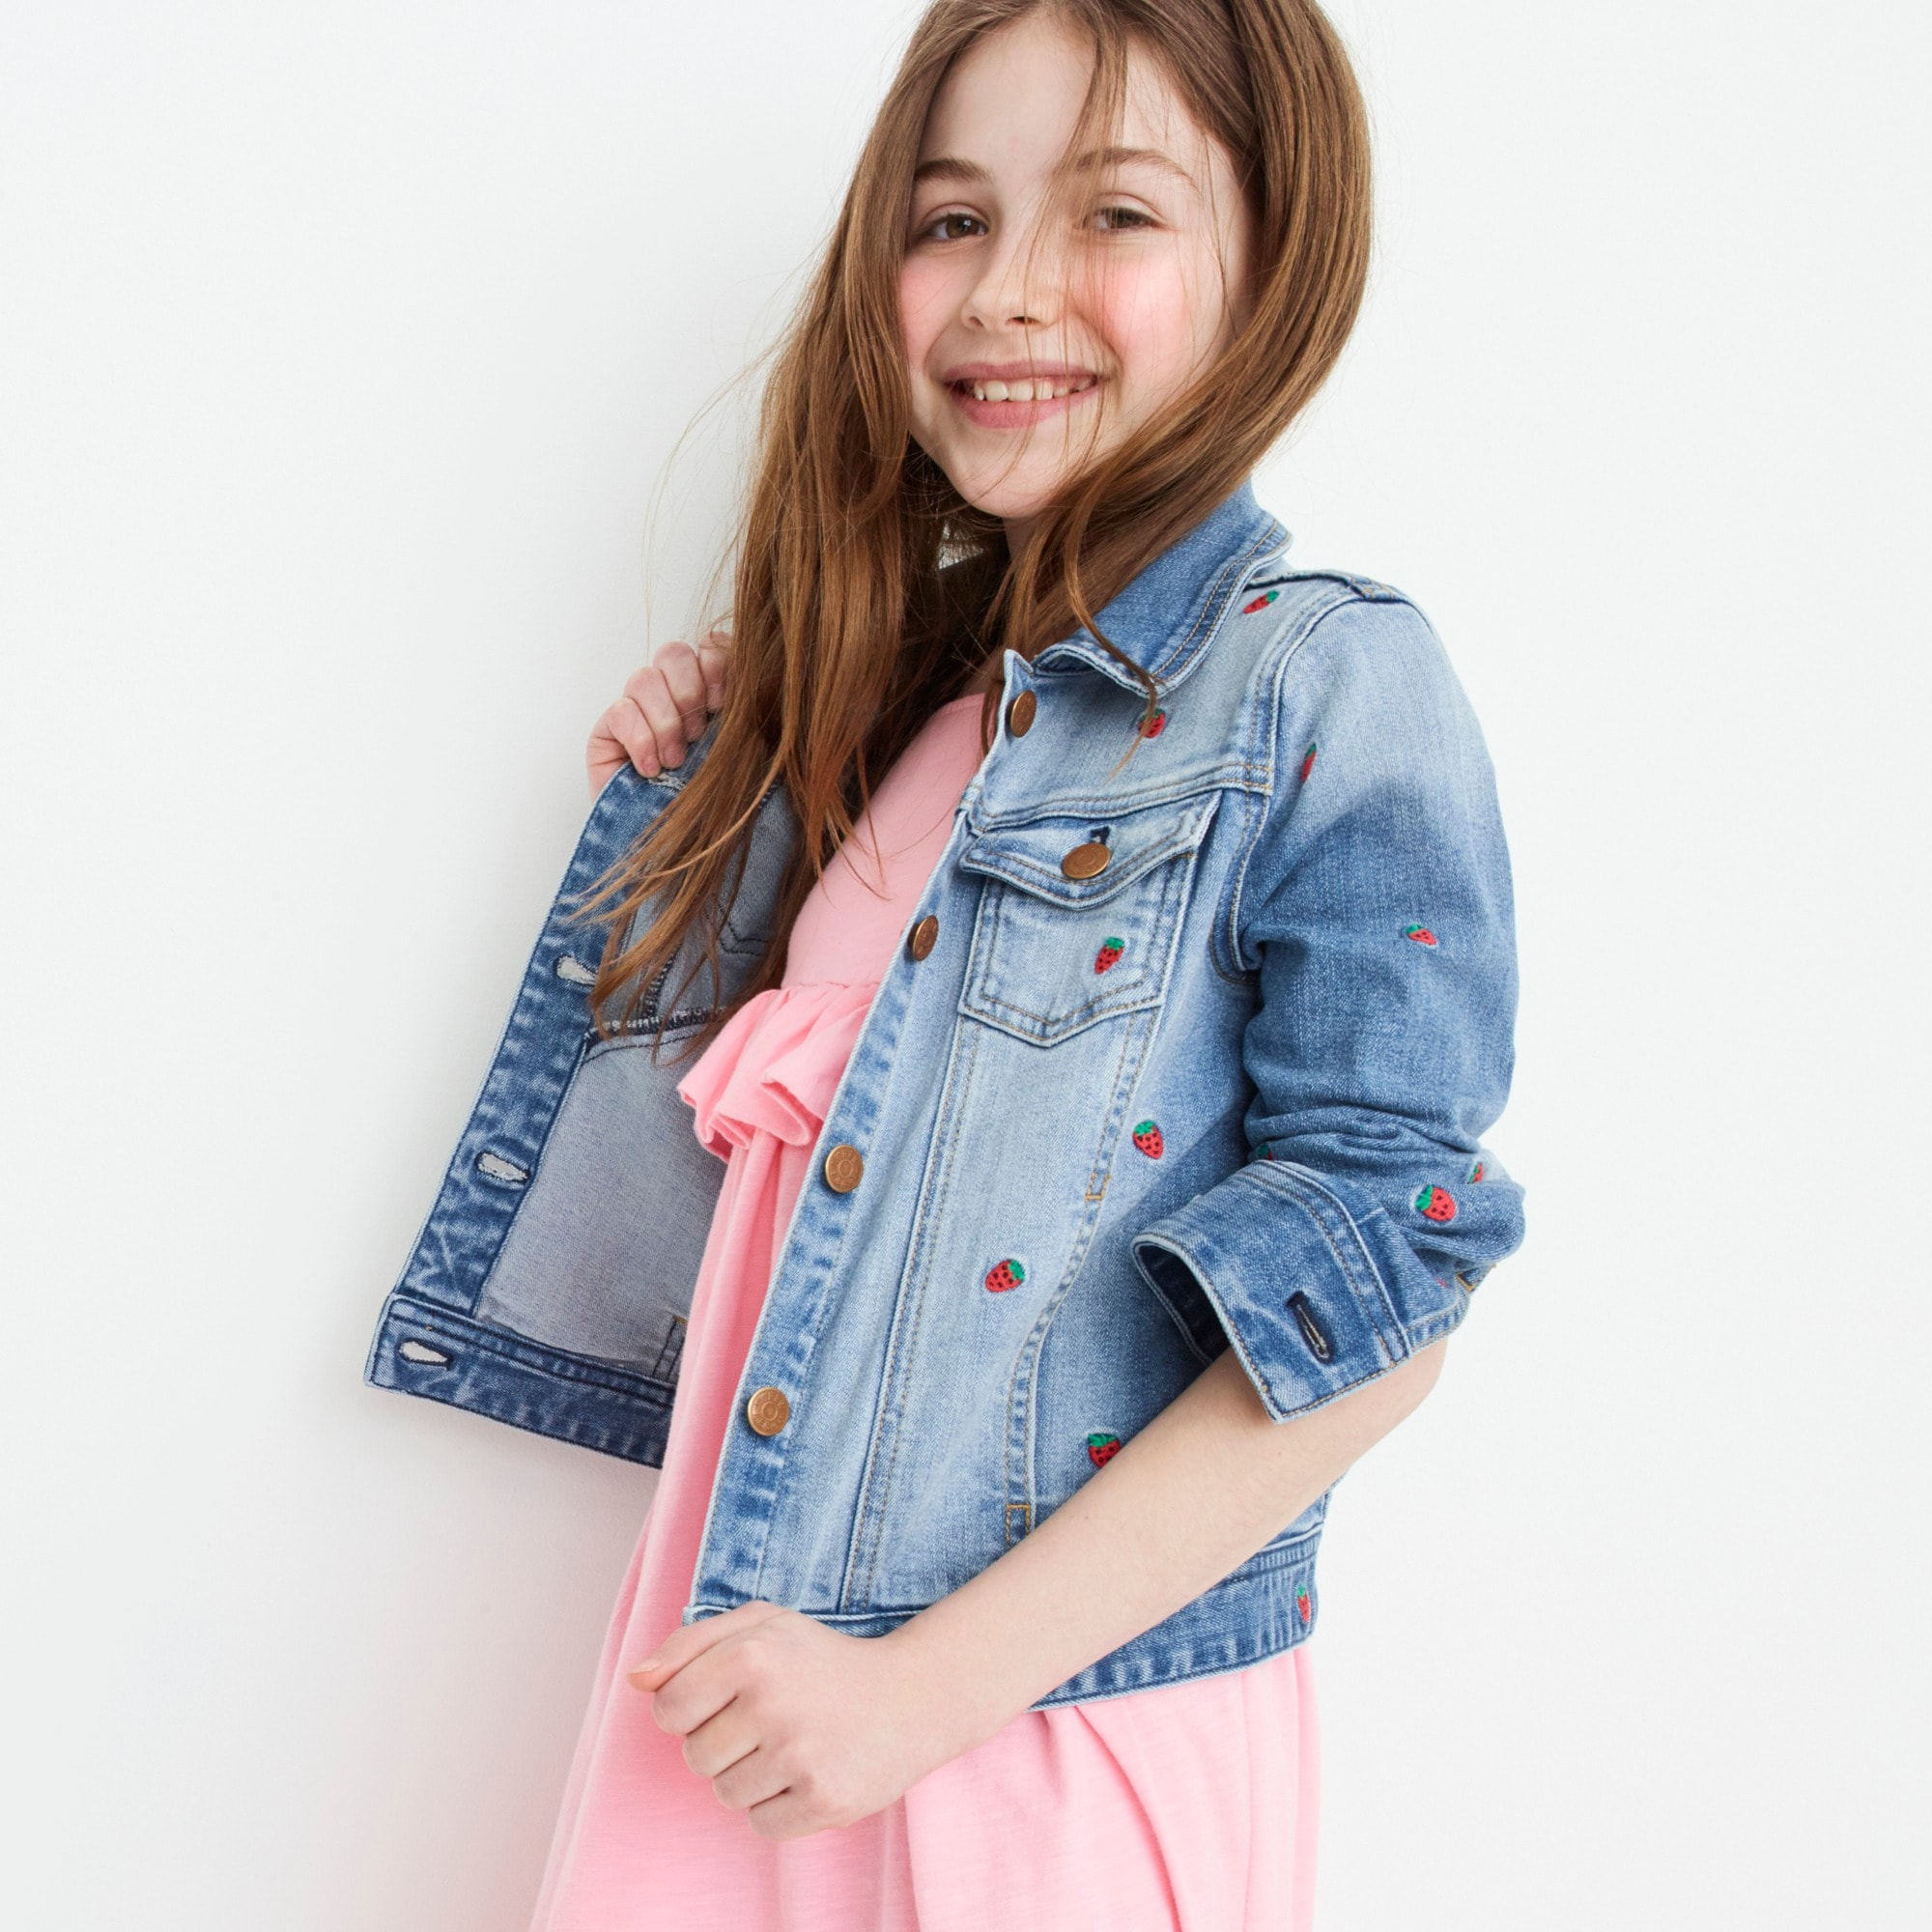 Image 1 for Girls' Madewell X crewcuts strawberry embroidered jean jacket